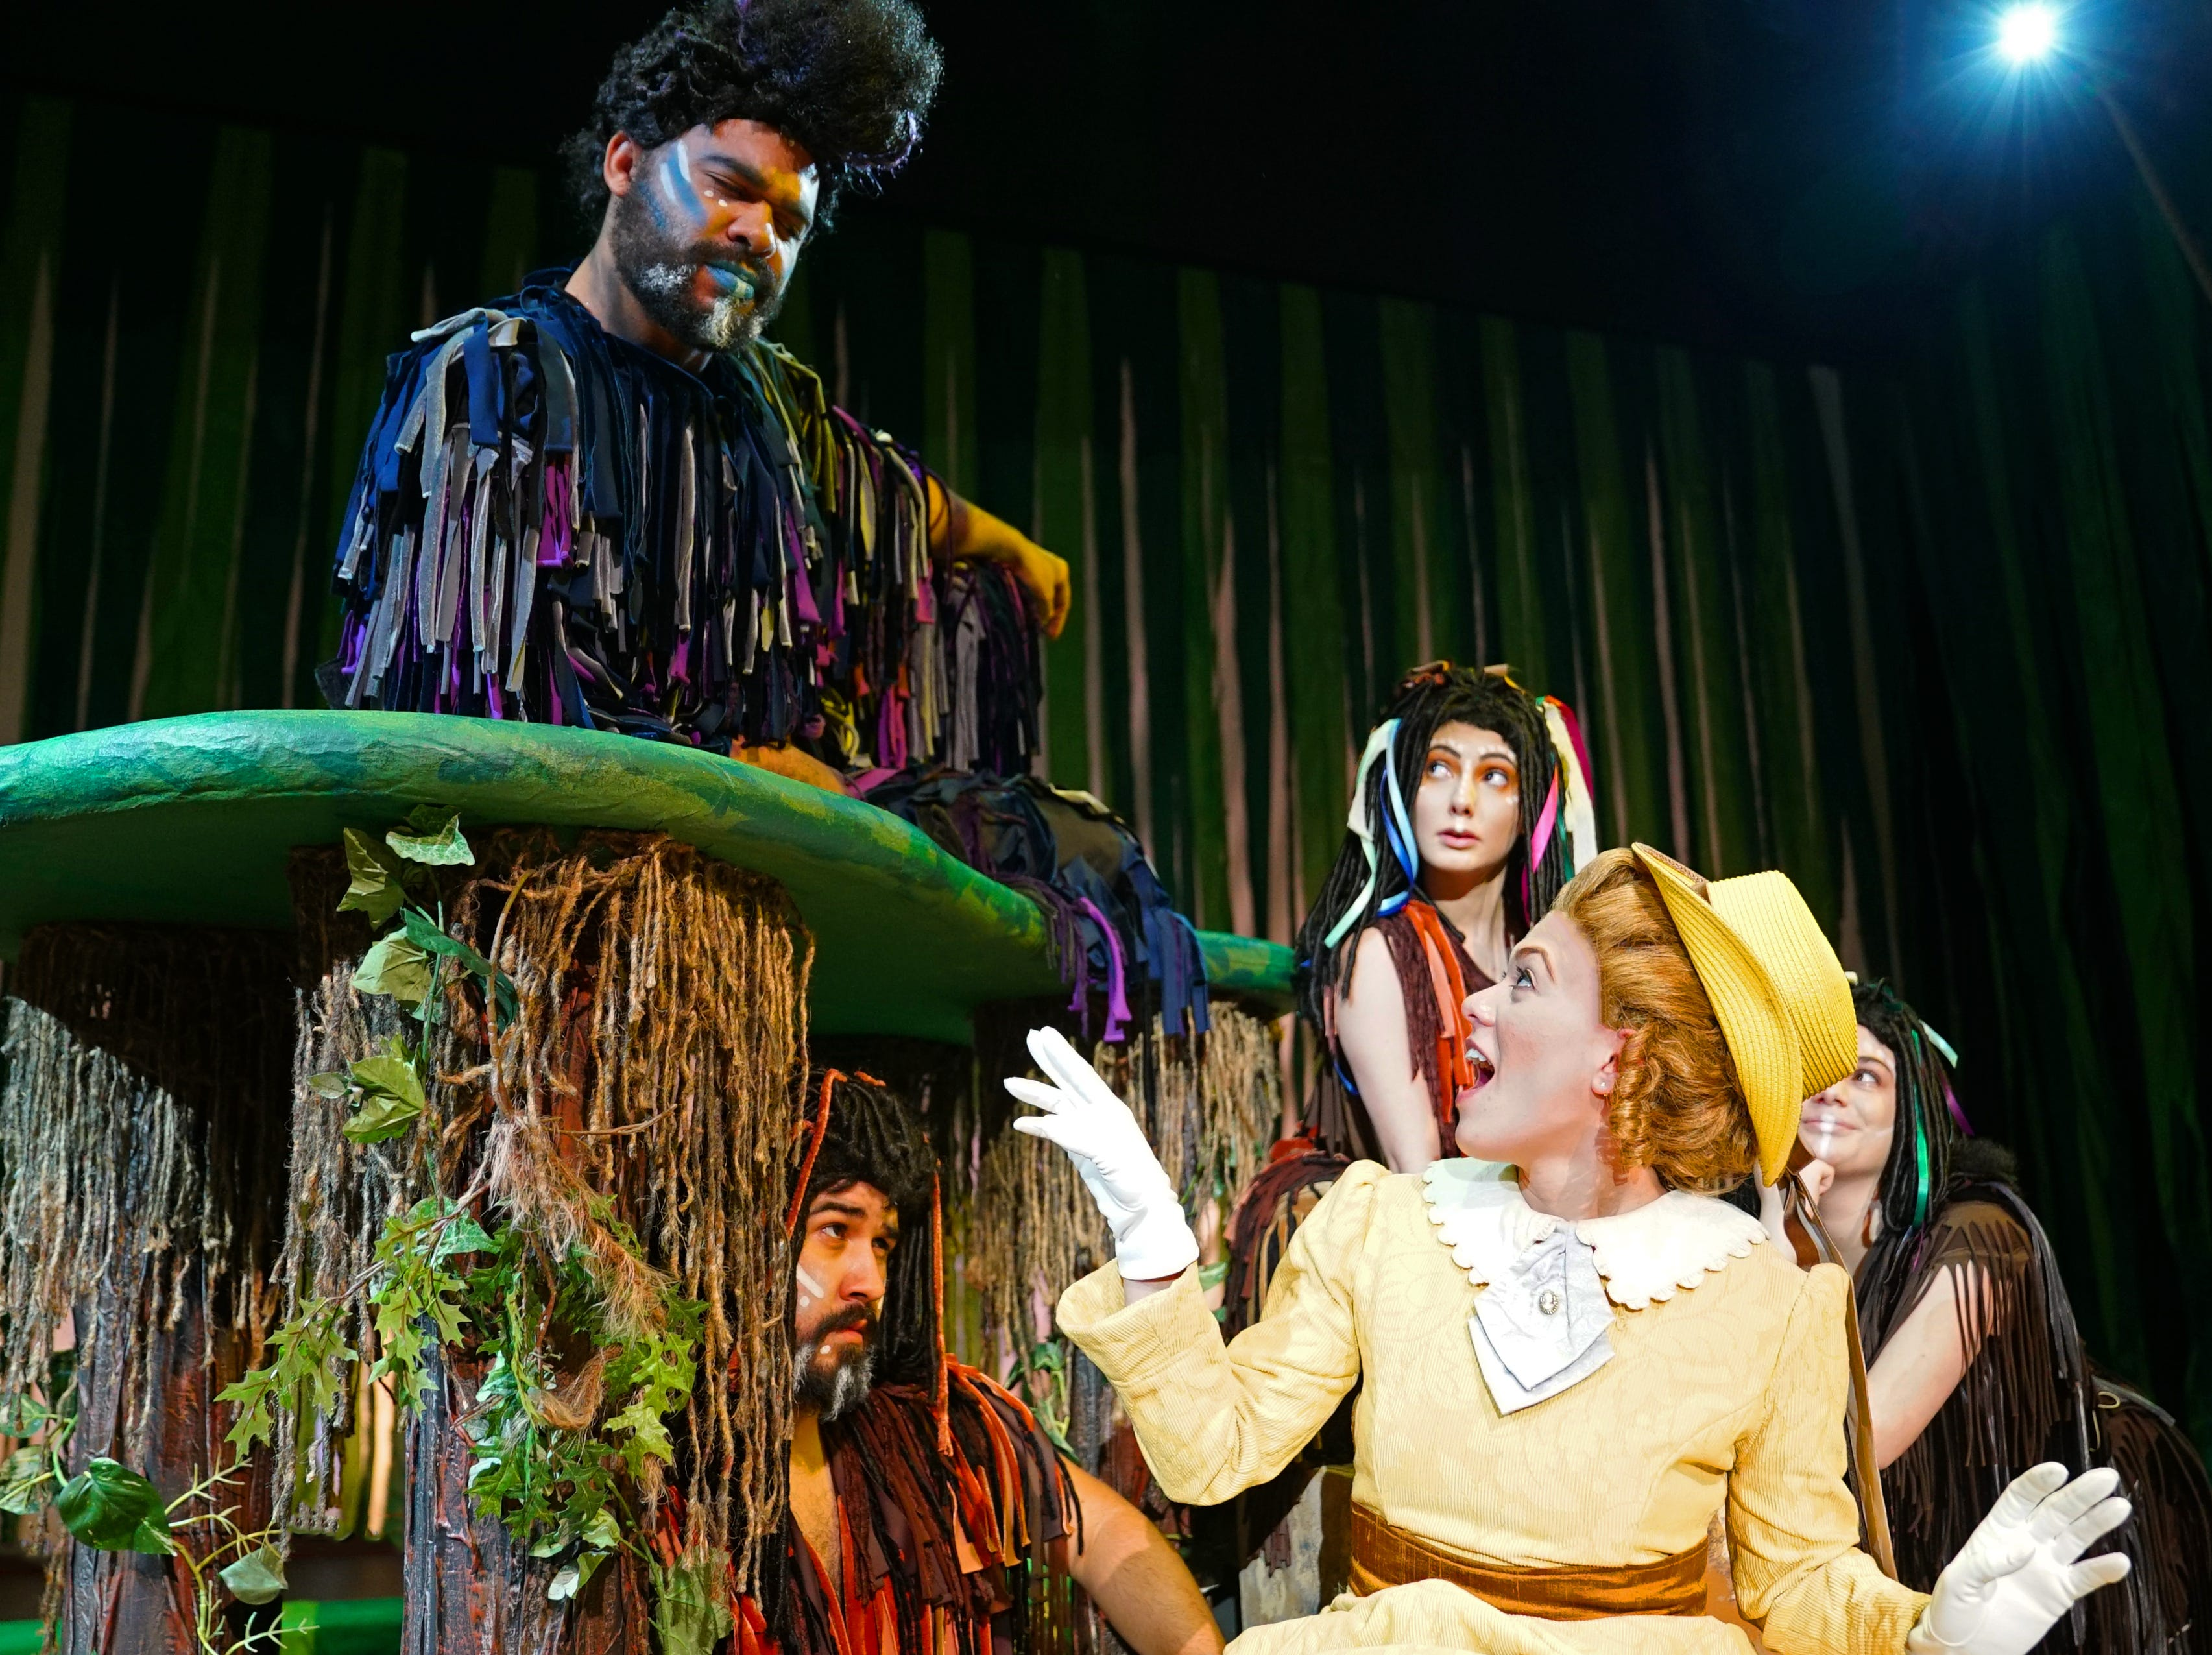 """Donnie Gethers plays """"Adult Terk"""" and Corinne Marie plays """"Jane""""  in """"Tarzan,"""" the stage musical based on the Disney film on stage at the Henegar Center in Melbourne through March 24th. For tickets or more information, visit henegar.org"""